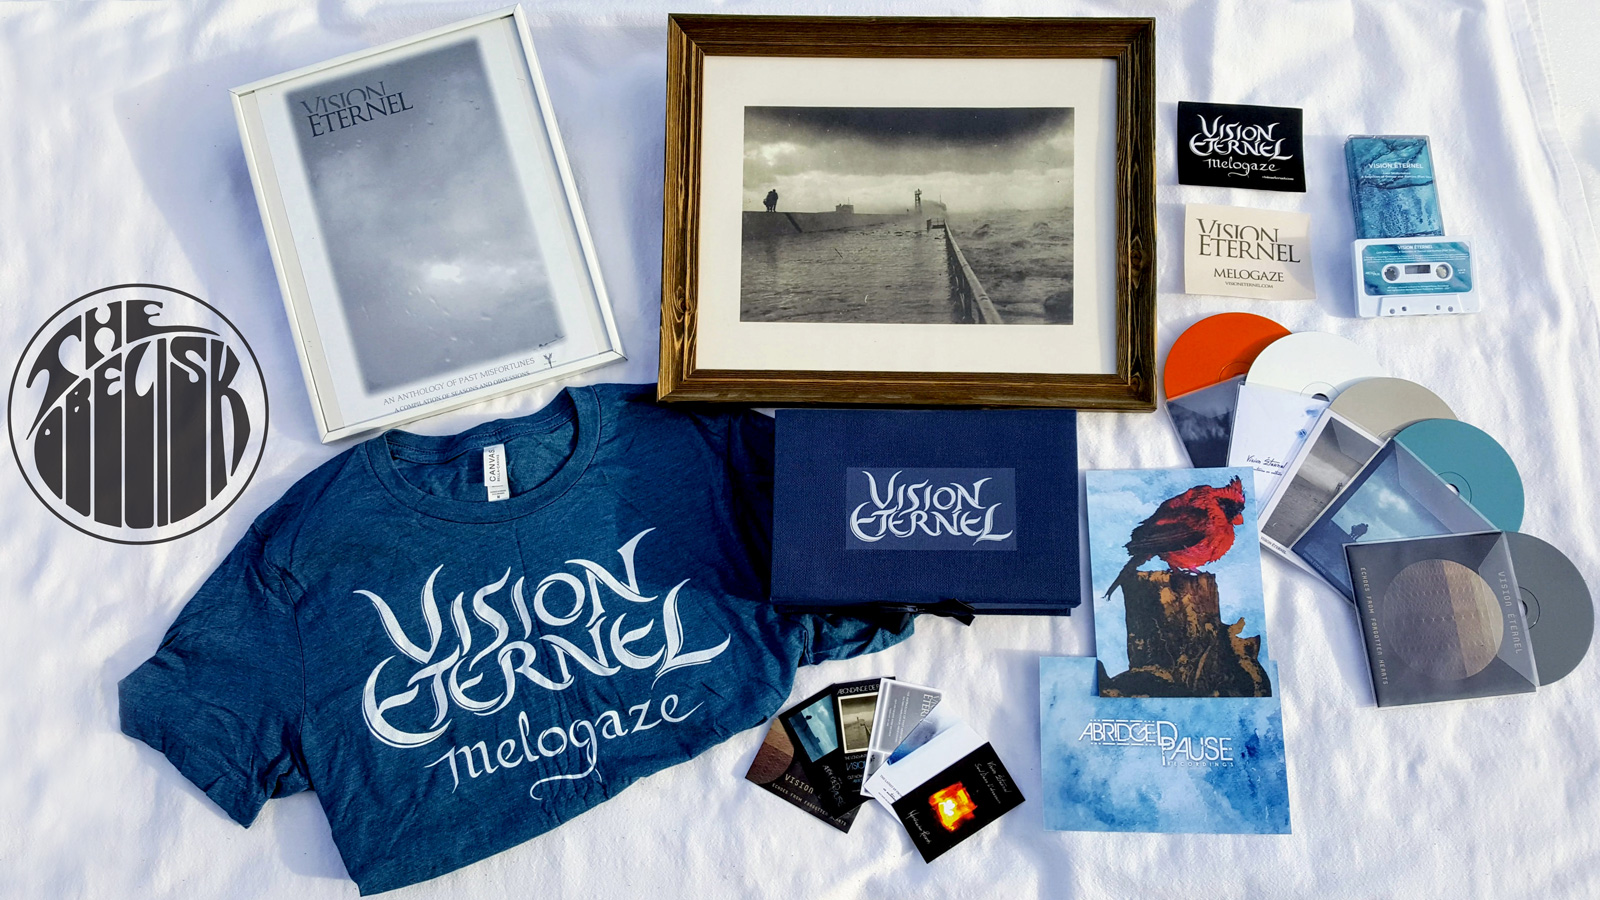 Giveaway Package: The Obelisk Premieres Vision Éternel's An Anthology Of Past Misfortunes Boxed Set With A Giveaway